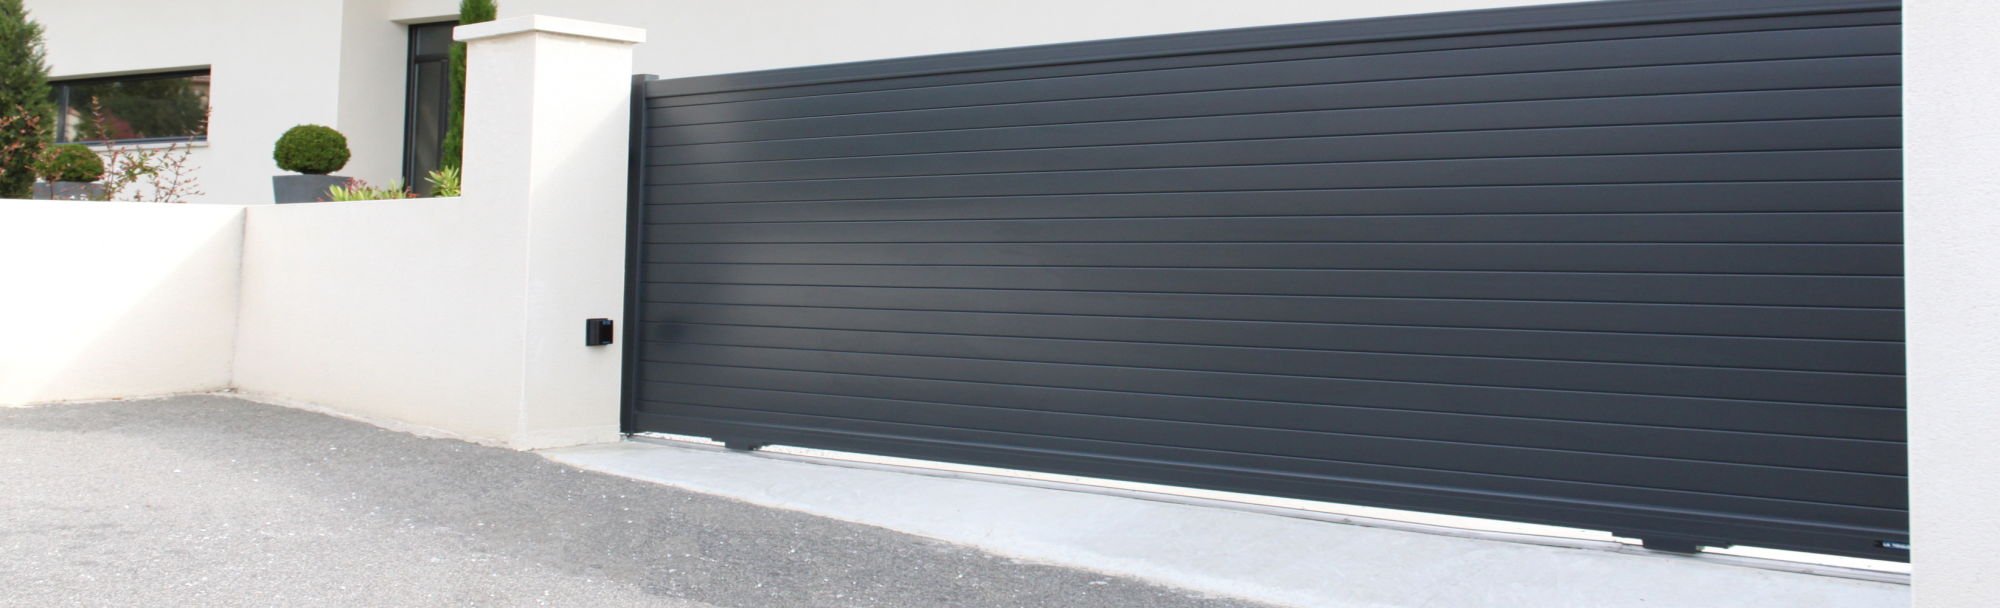 Sliding gate - Modern line Intimacy Model - Anthracite